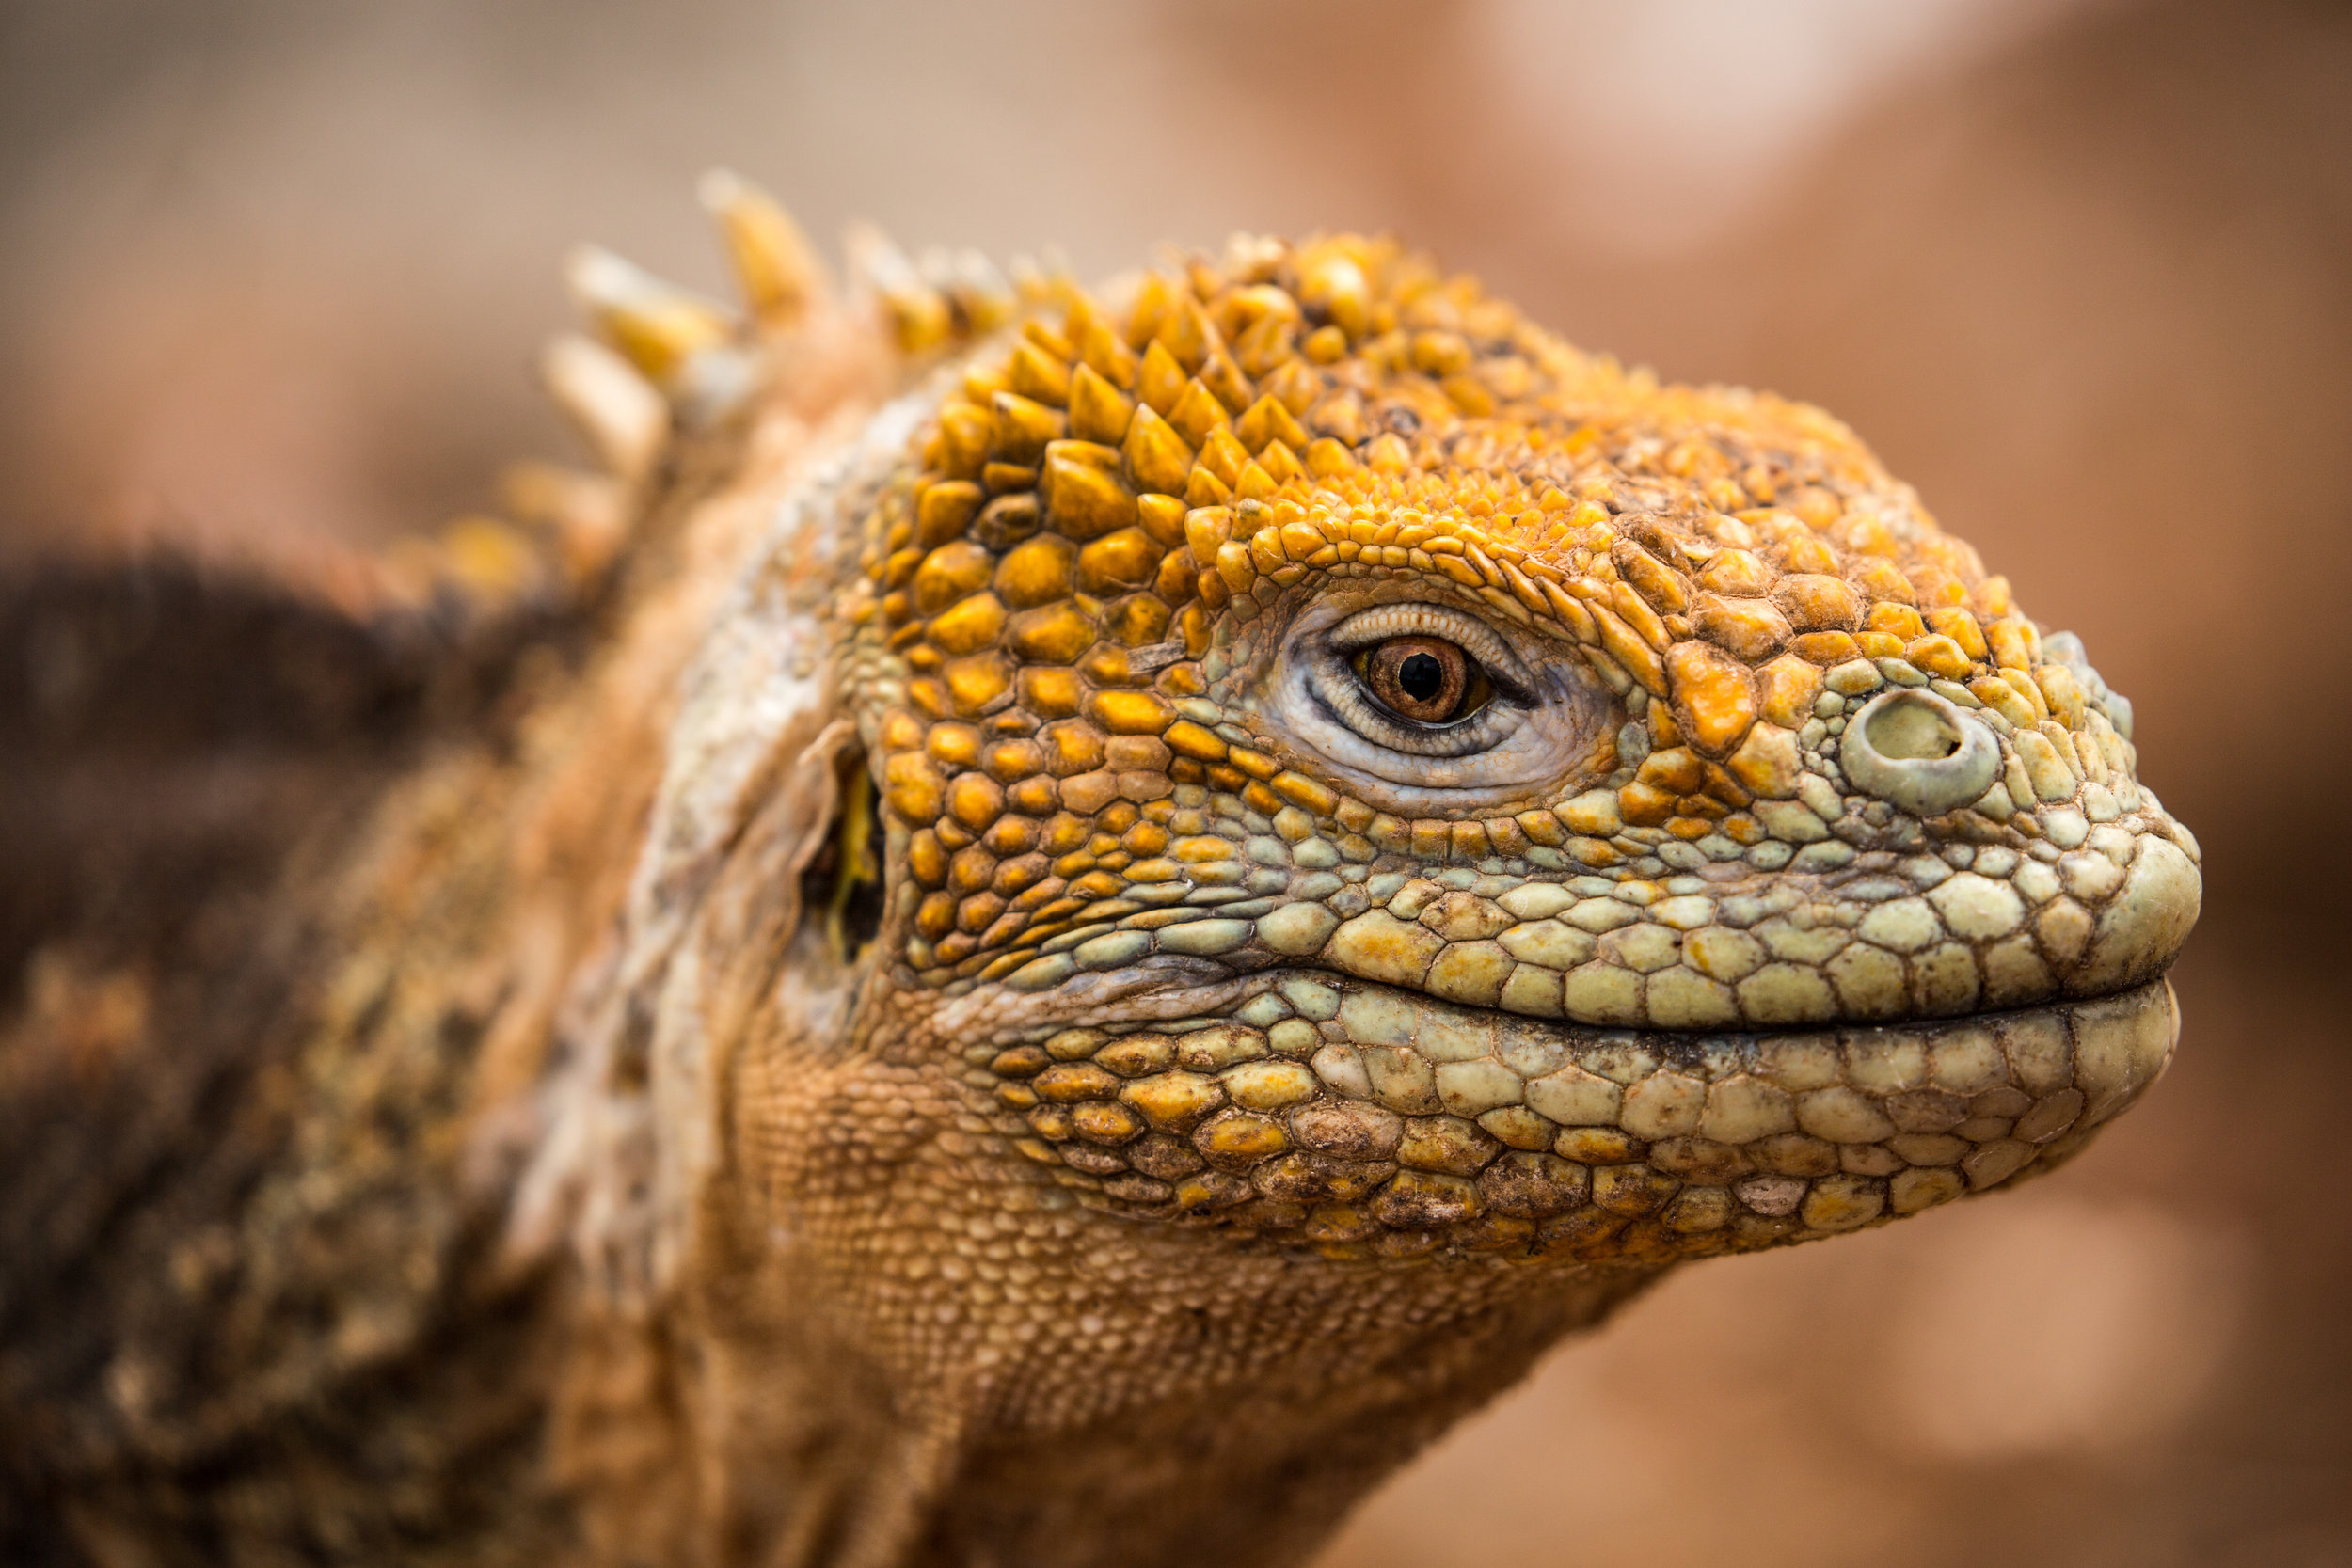 Galapagos land iguana (Conolophus subcristatus) - This iguana is endemic to six of the Galapagos Islands: Fernandina, Isabela, Santa Cruz, North Seymour, Baltra, and South Plaza, but varies in color and morphology from island to island. Charles Darwin described them as